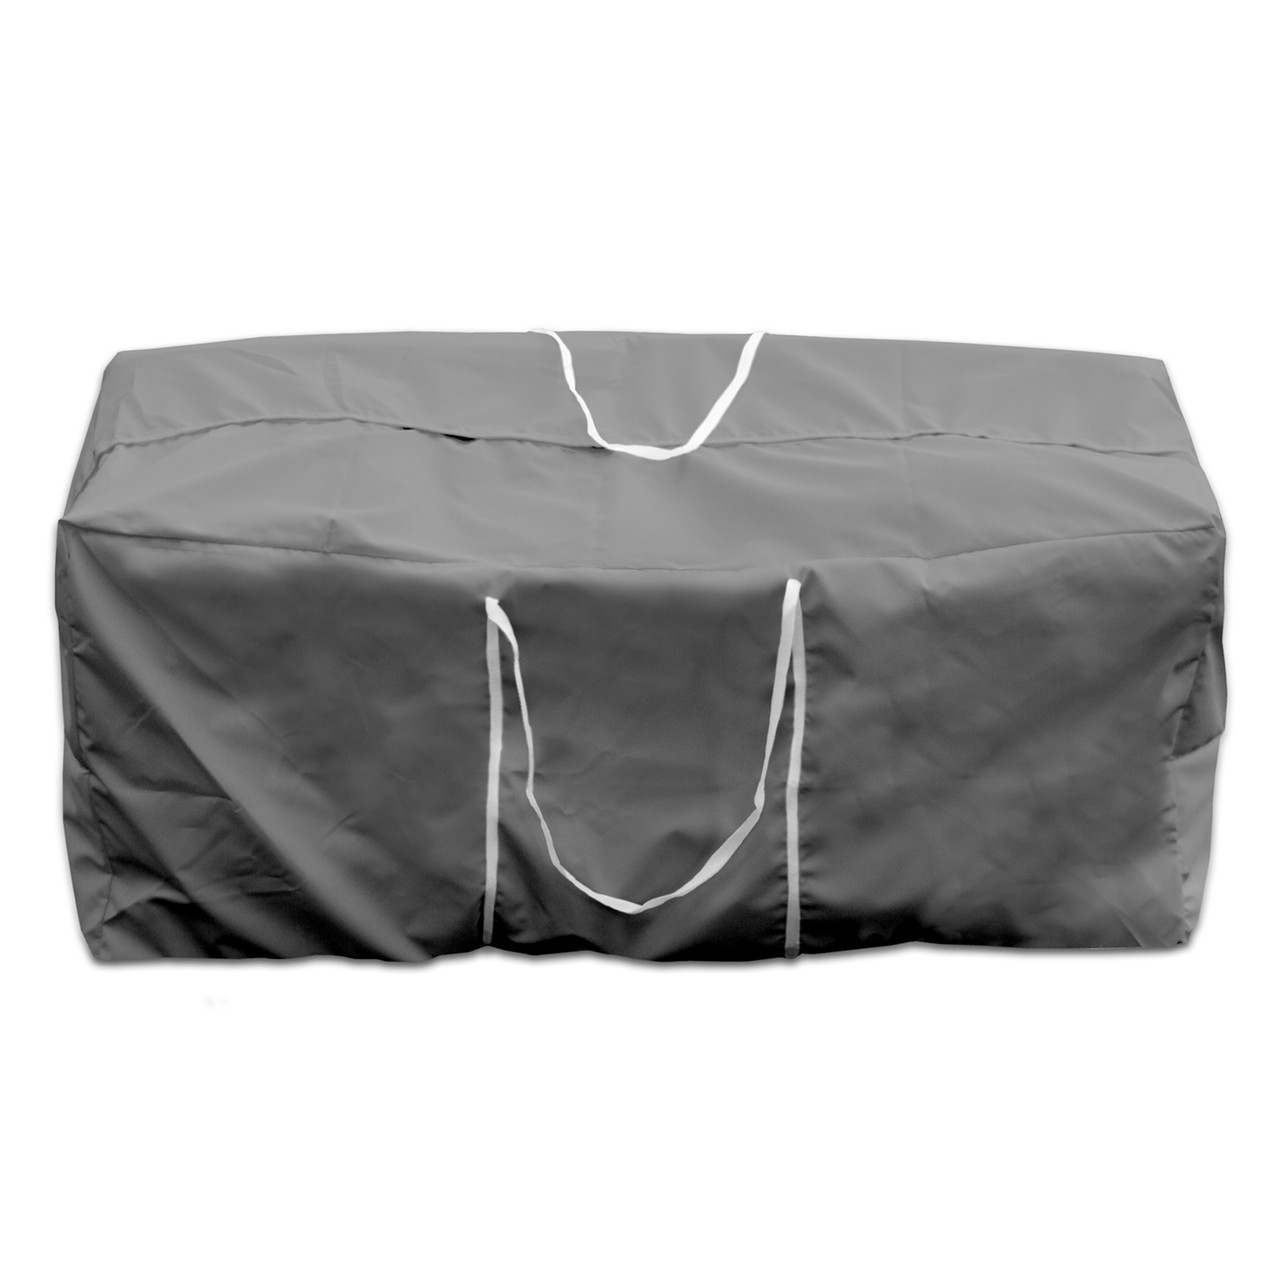 cover for outdoor furniture. Outdoor Storage Bag Cover For Furniture P